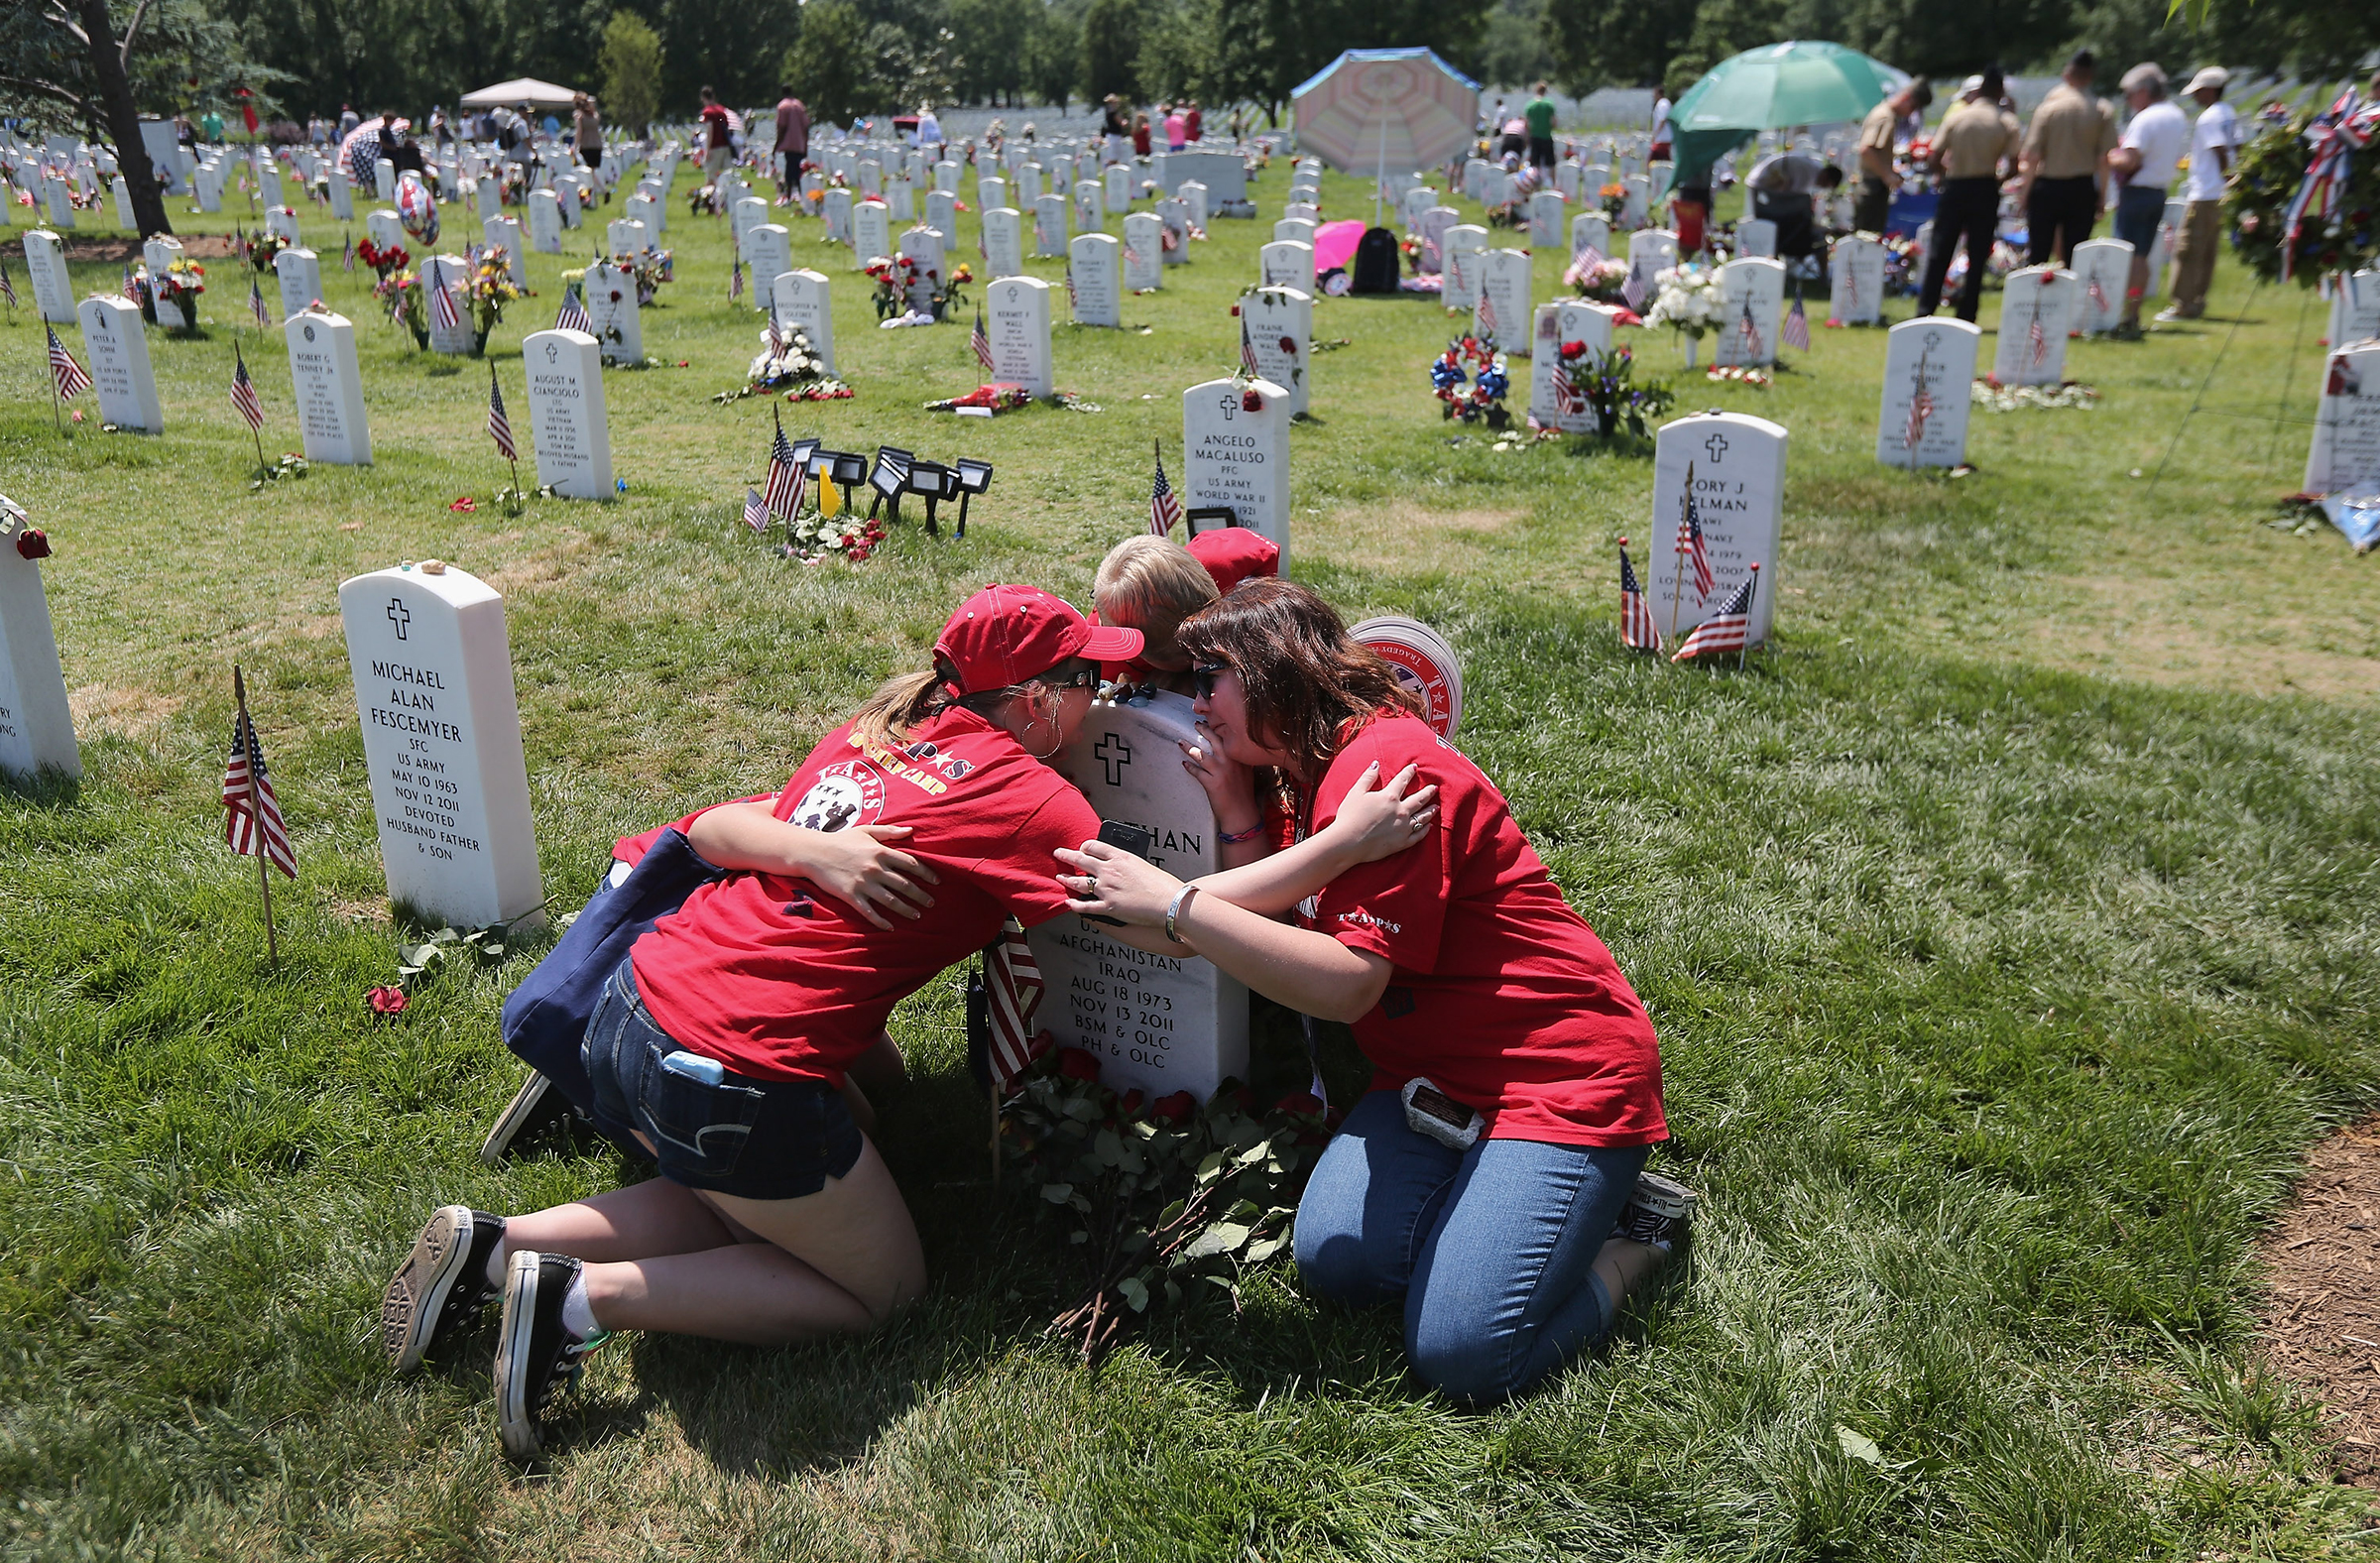 Leanne McCain, right, and her children embrace over her slain husband's grave at Arlington National Cemetery on May 28, 2012. Her husband, father-of-four Army SFC Johnathan McCain, was killed by a roadside bomb in Afghanistan in November 2011.